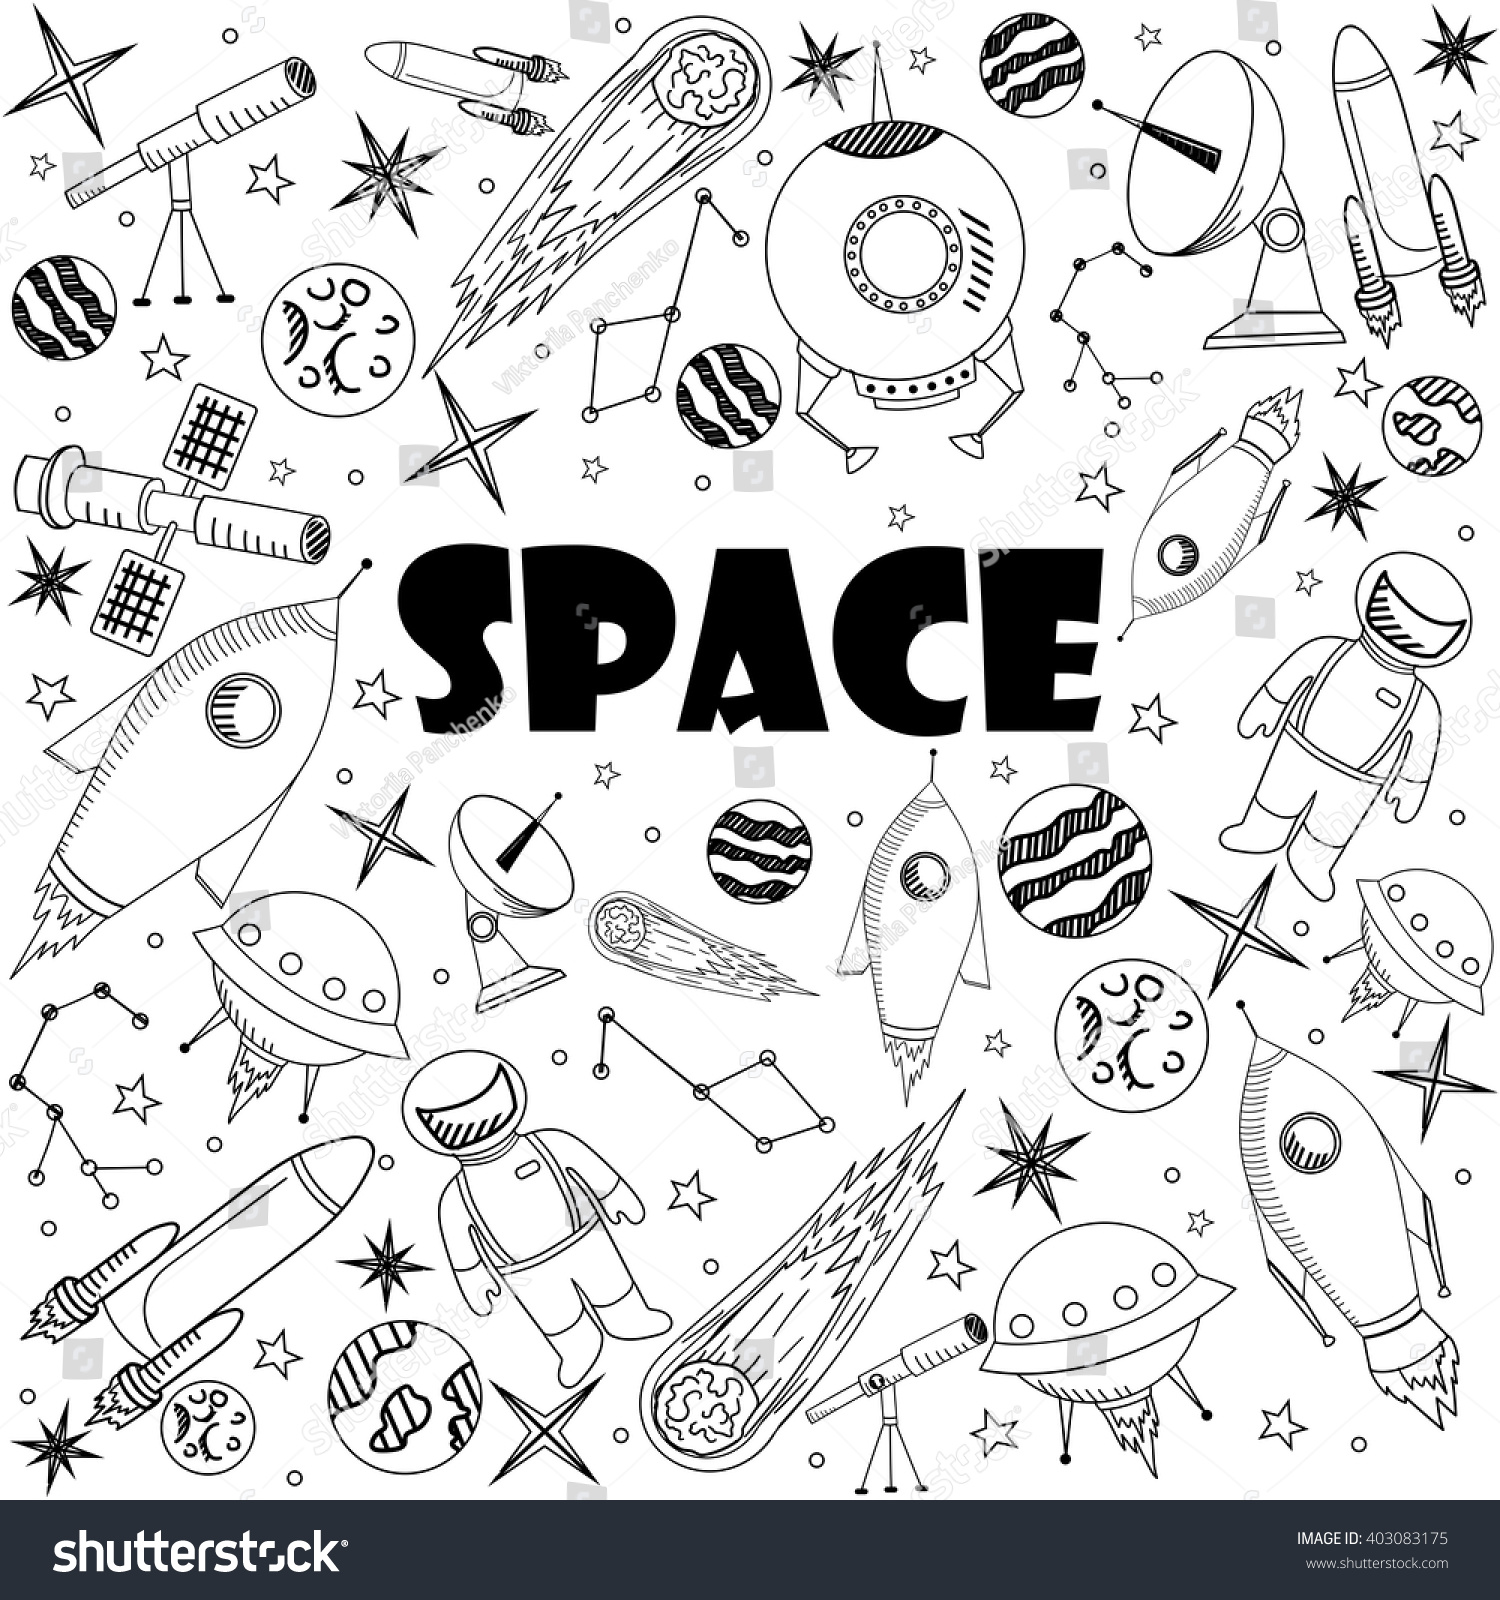 Uncategorized Space Coloring Book space coloring book line art design stock vector 403083175 illustration separate objects hand drawn doodle design